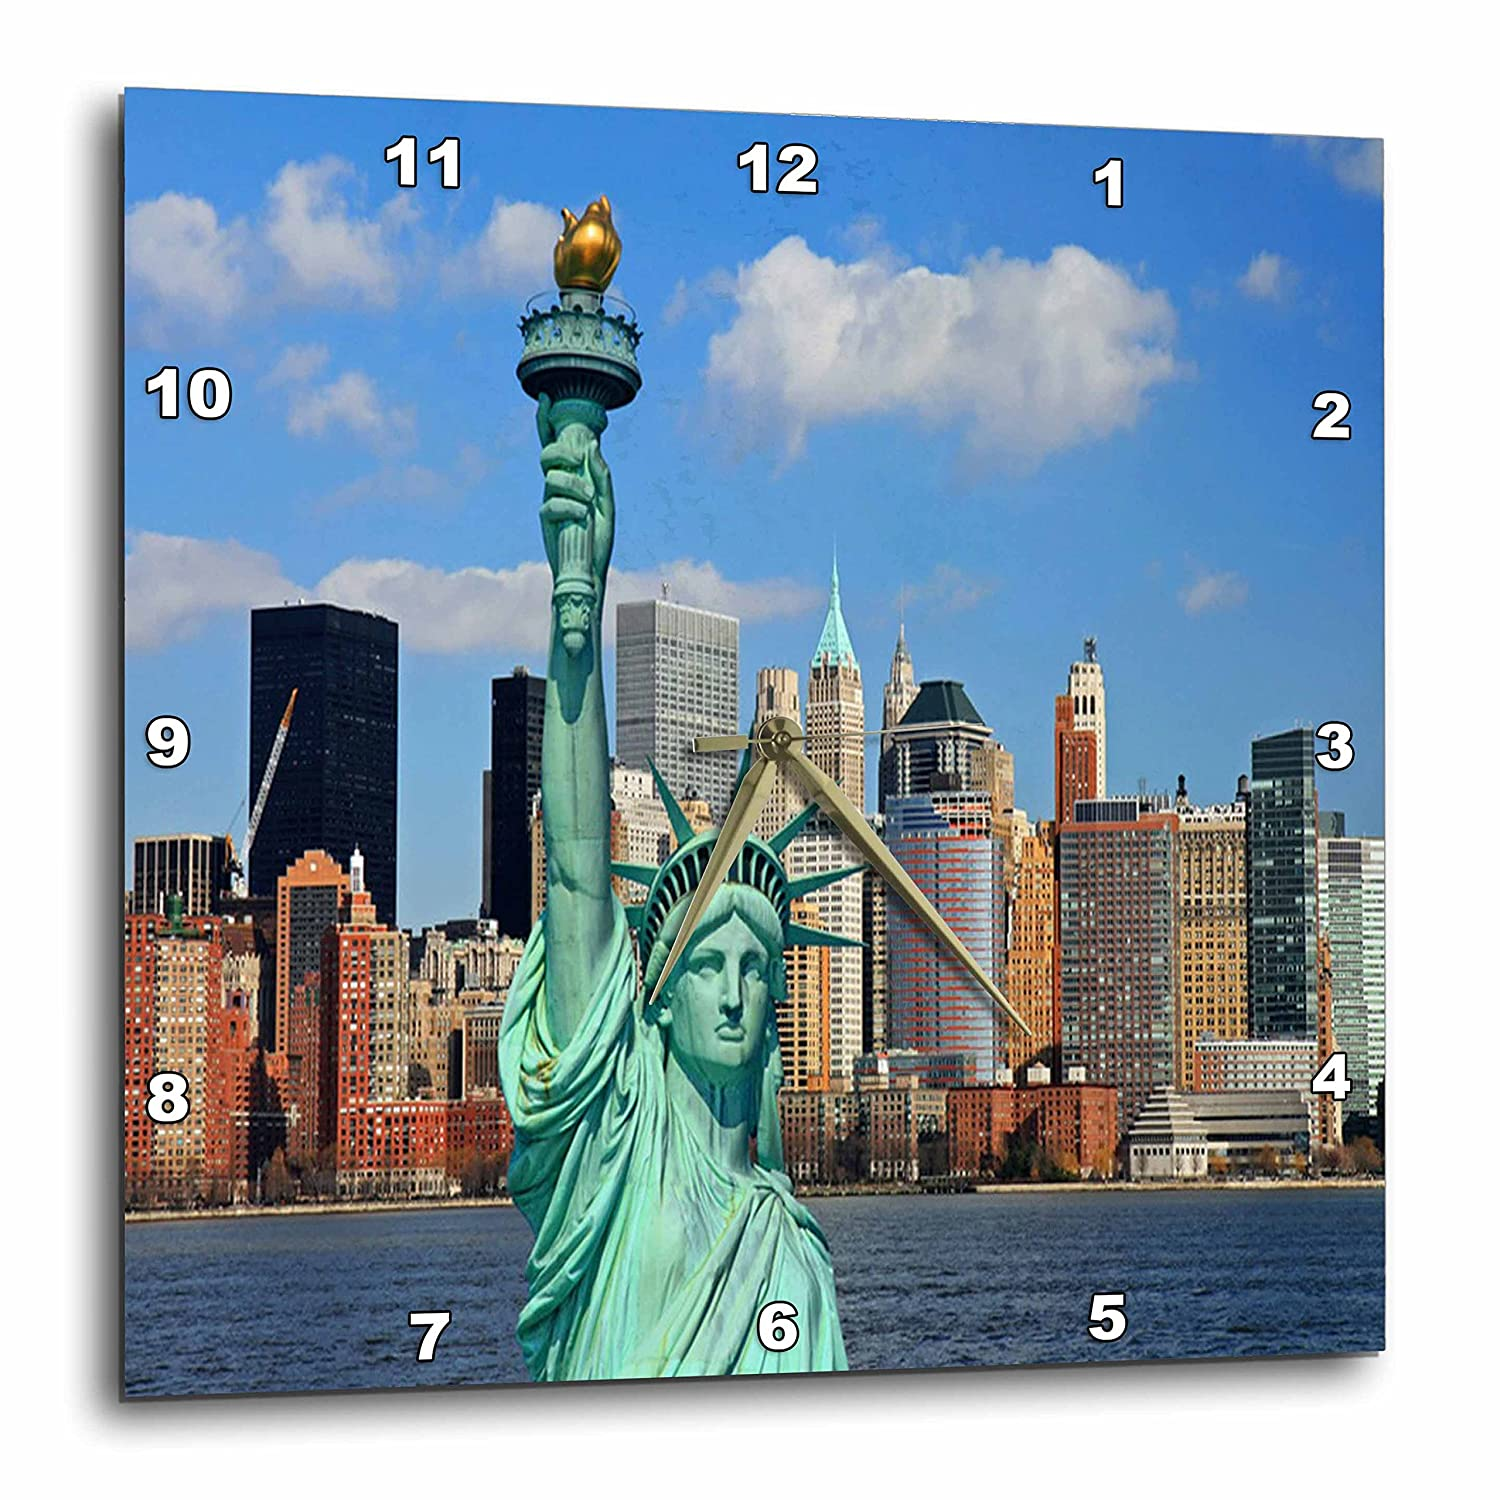 3dRose dpp/_50916/_1 NYC Statue of Liberty Wall Clock 10 by 10-Inch